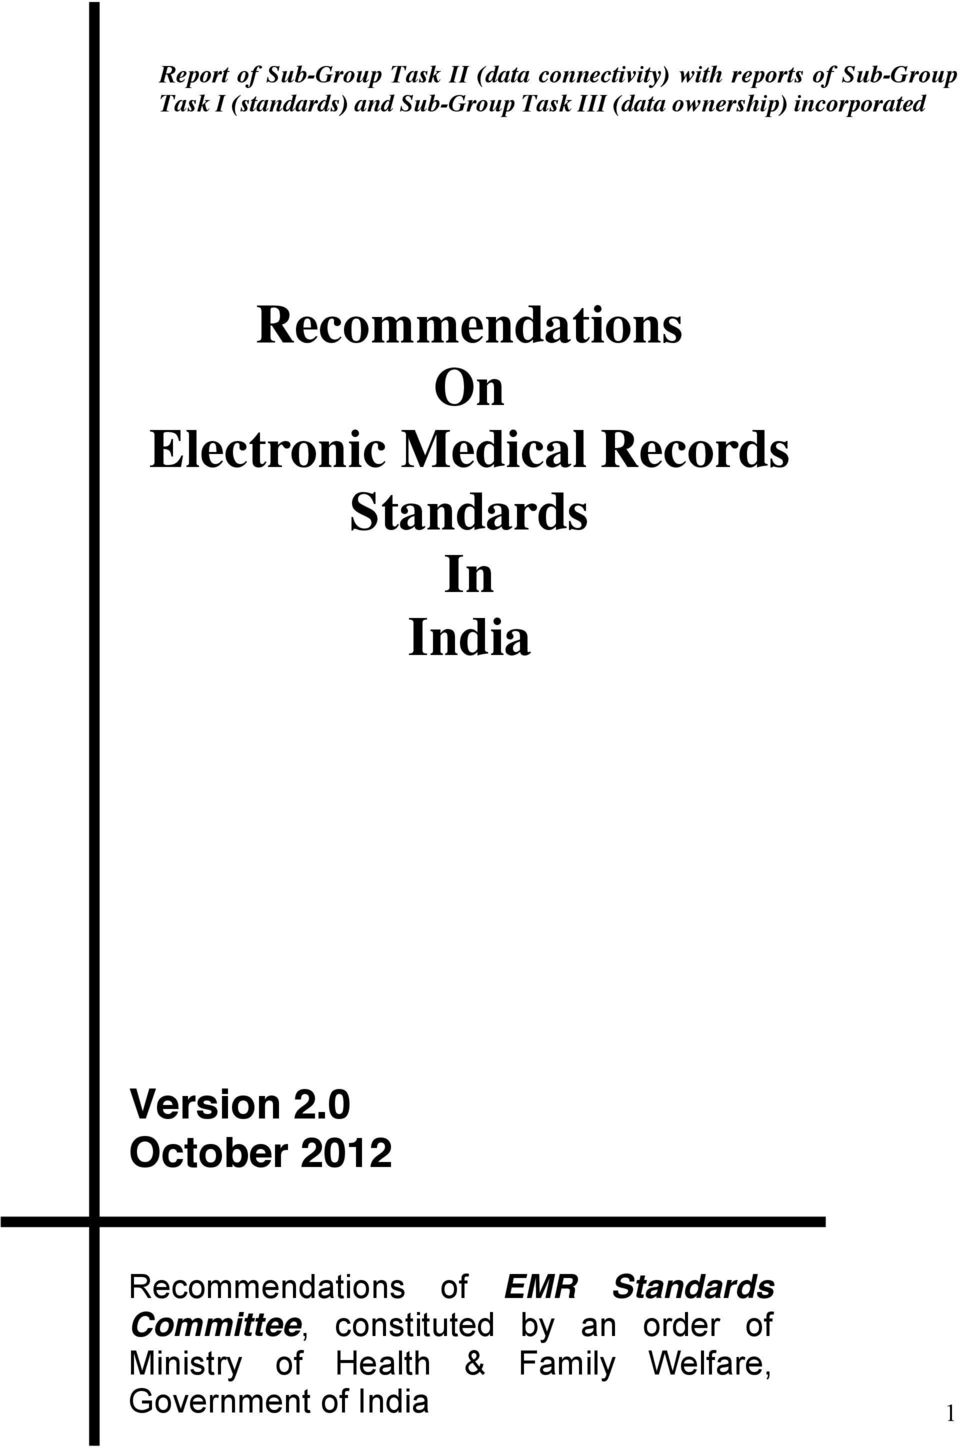 Electronic Medical Records Standards In India Version 2.